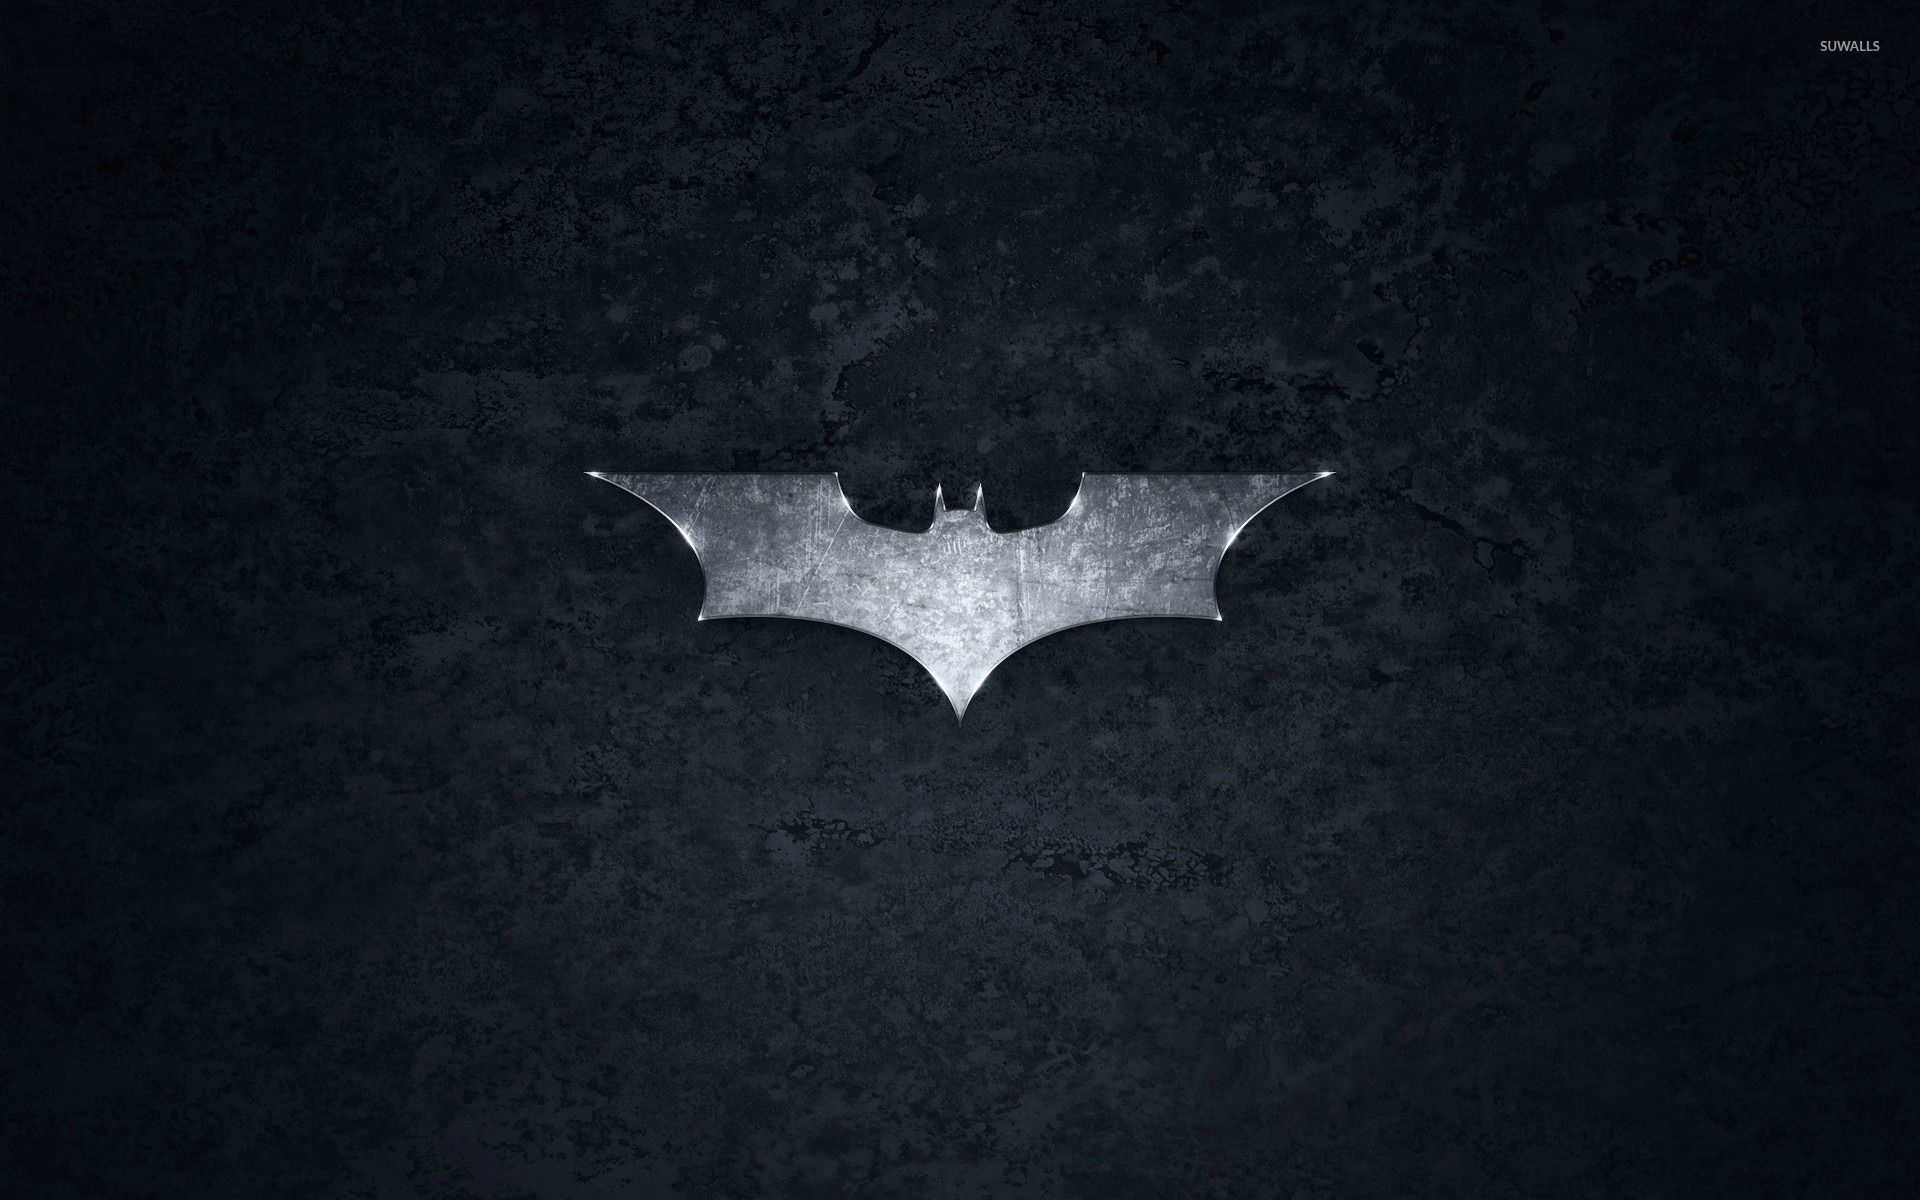 Batman Logo Wallpaper 1080p Google Search Dengan Gambar